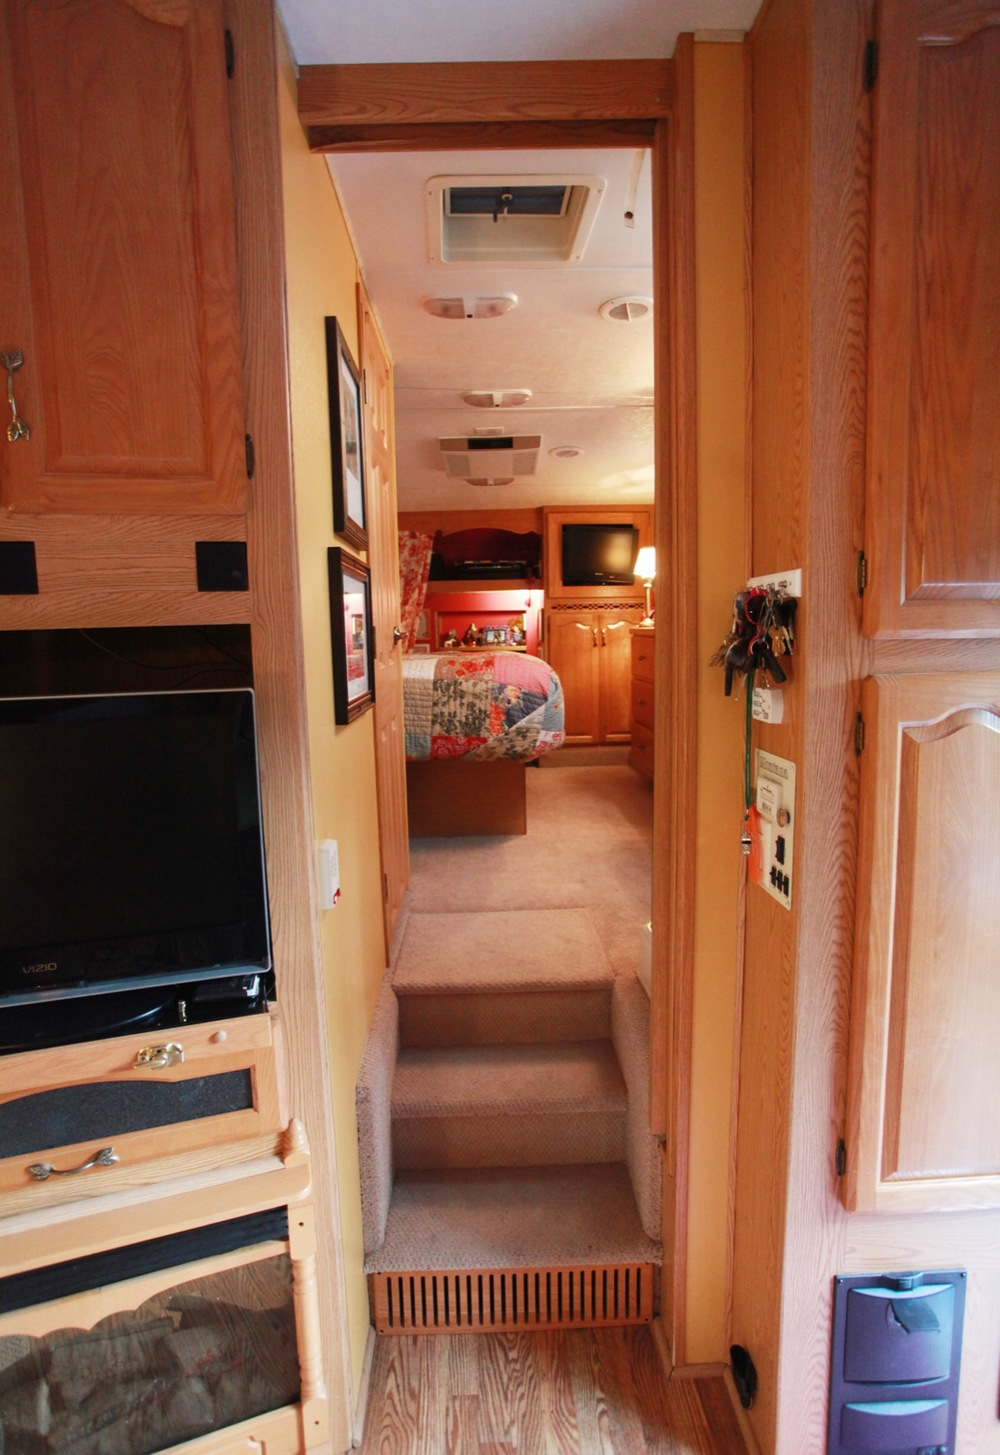 2005 Keystone Montana Fifth Wheel For Sale - Stairs Up.jpg